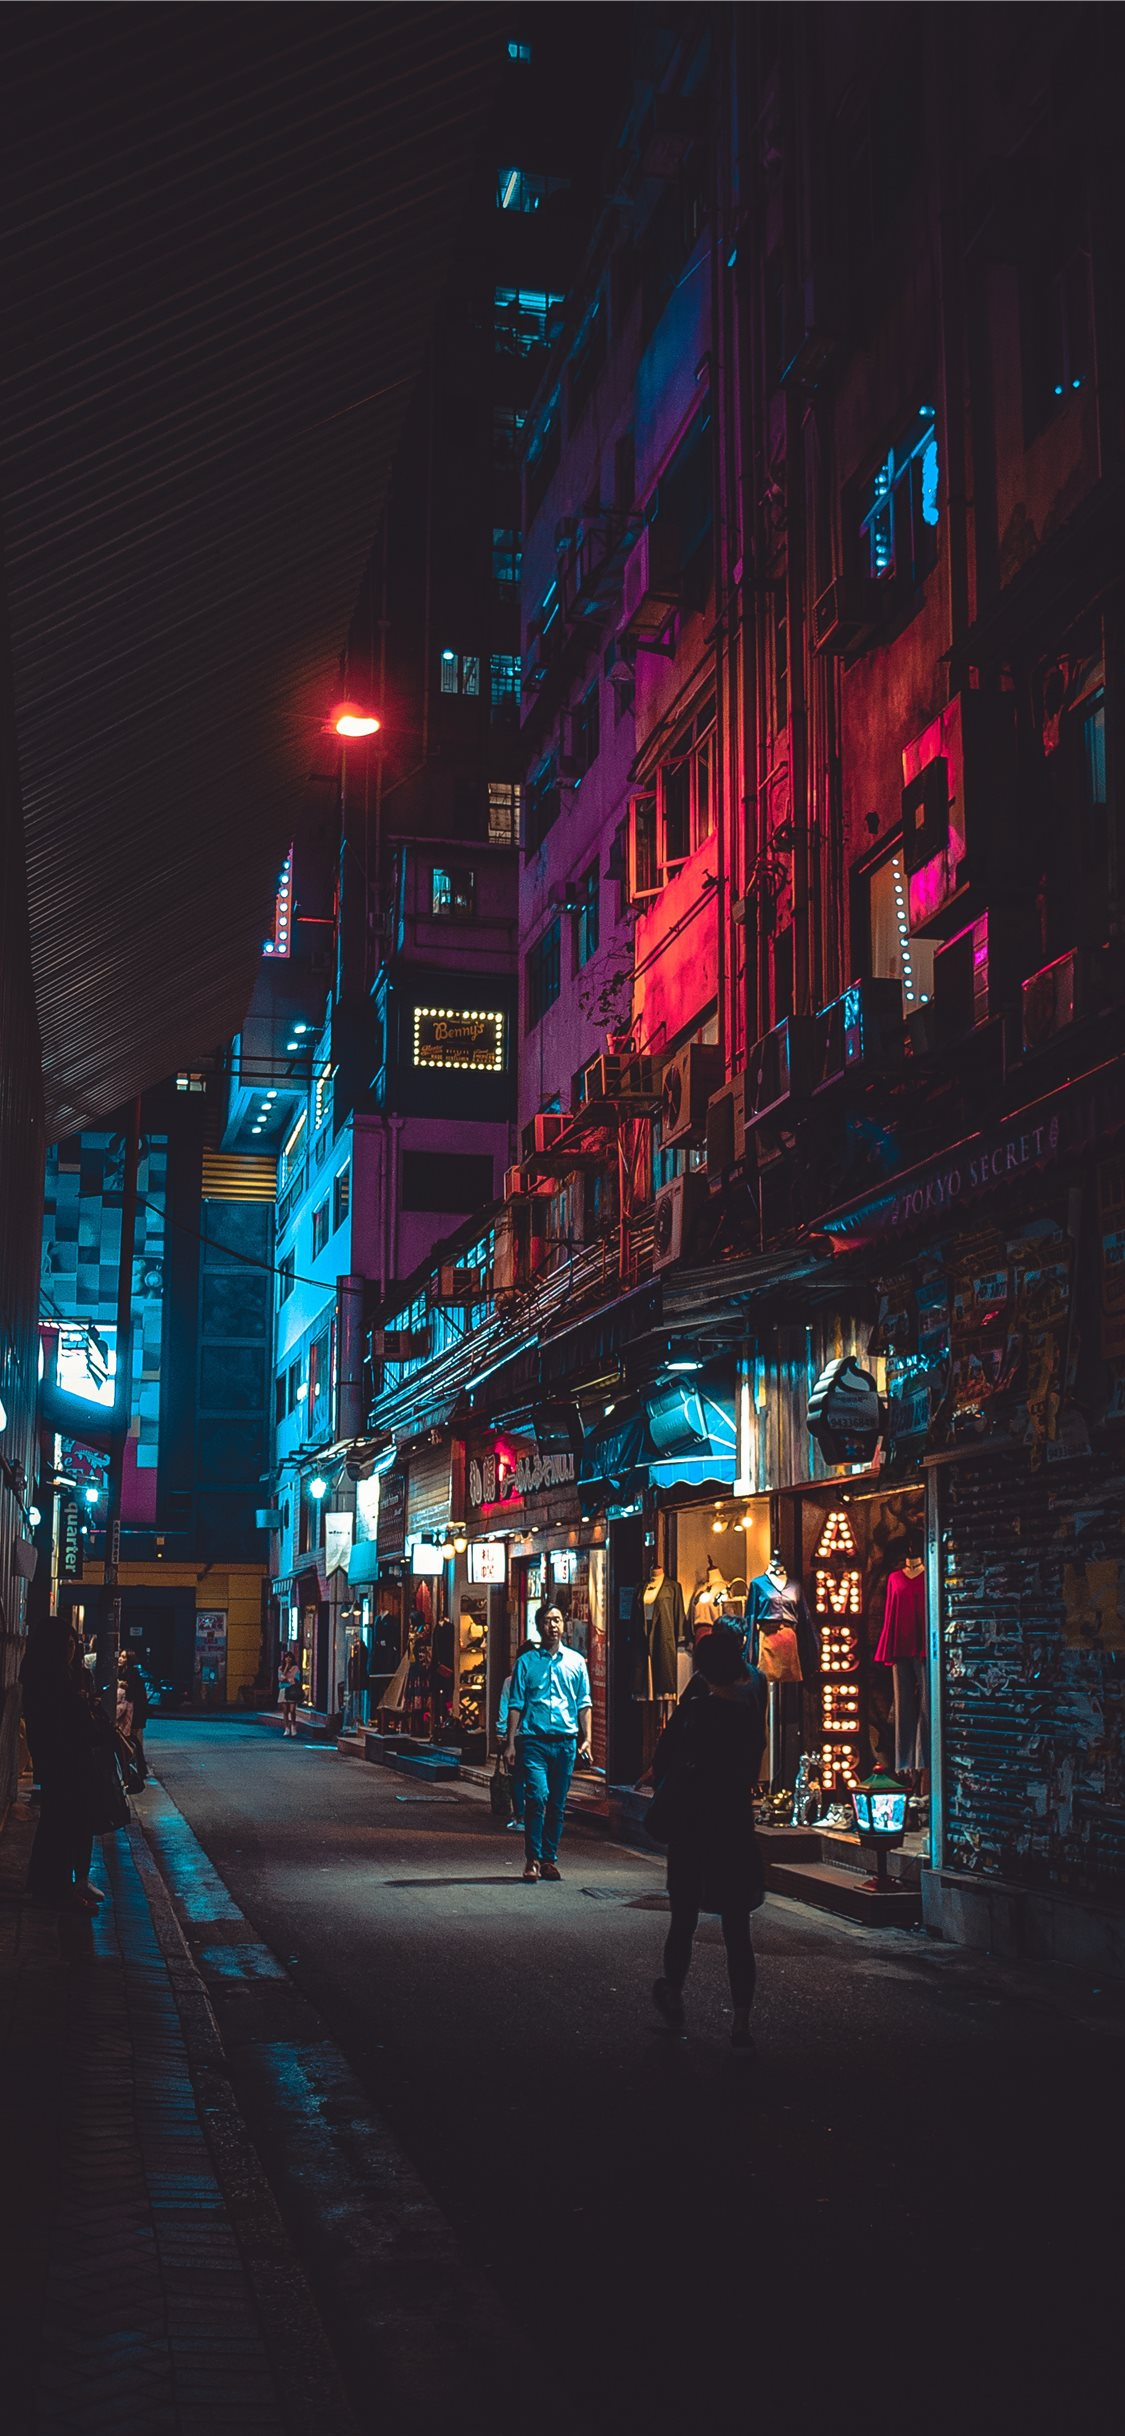 Night in Hong Kong iphone x wallpaper ilikewallpaper com